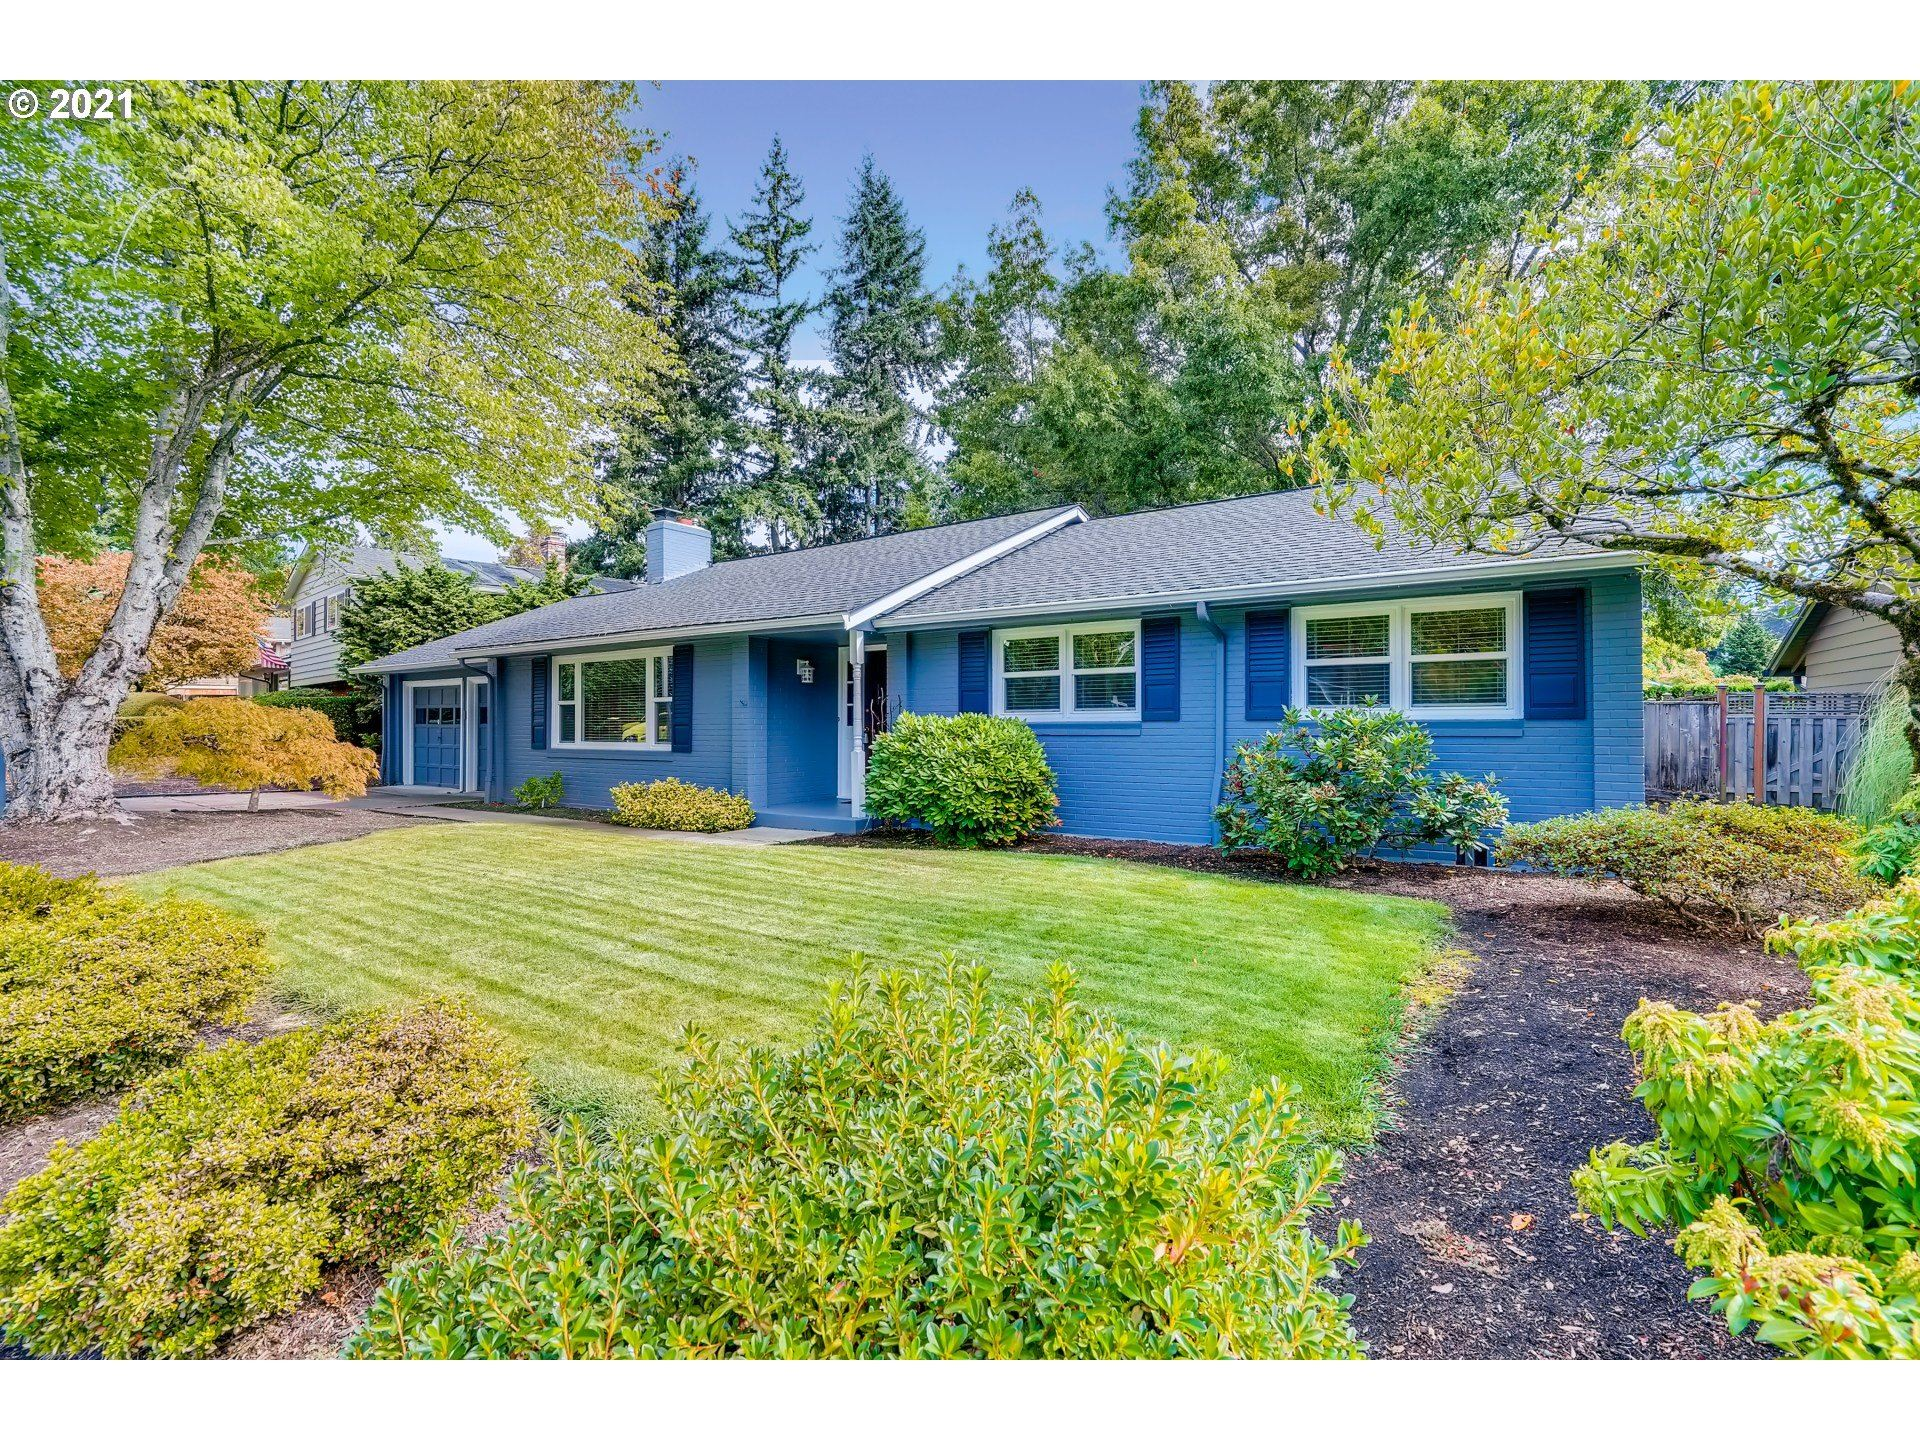 2200 SW WINCHESTER AVE, Portland, OR 97225 - MLS#: 21508926